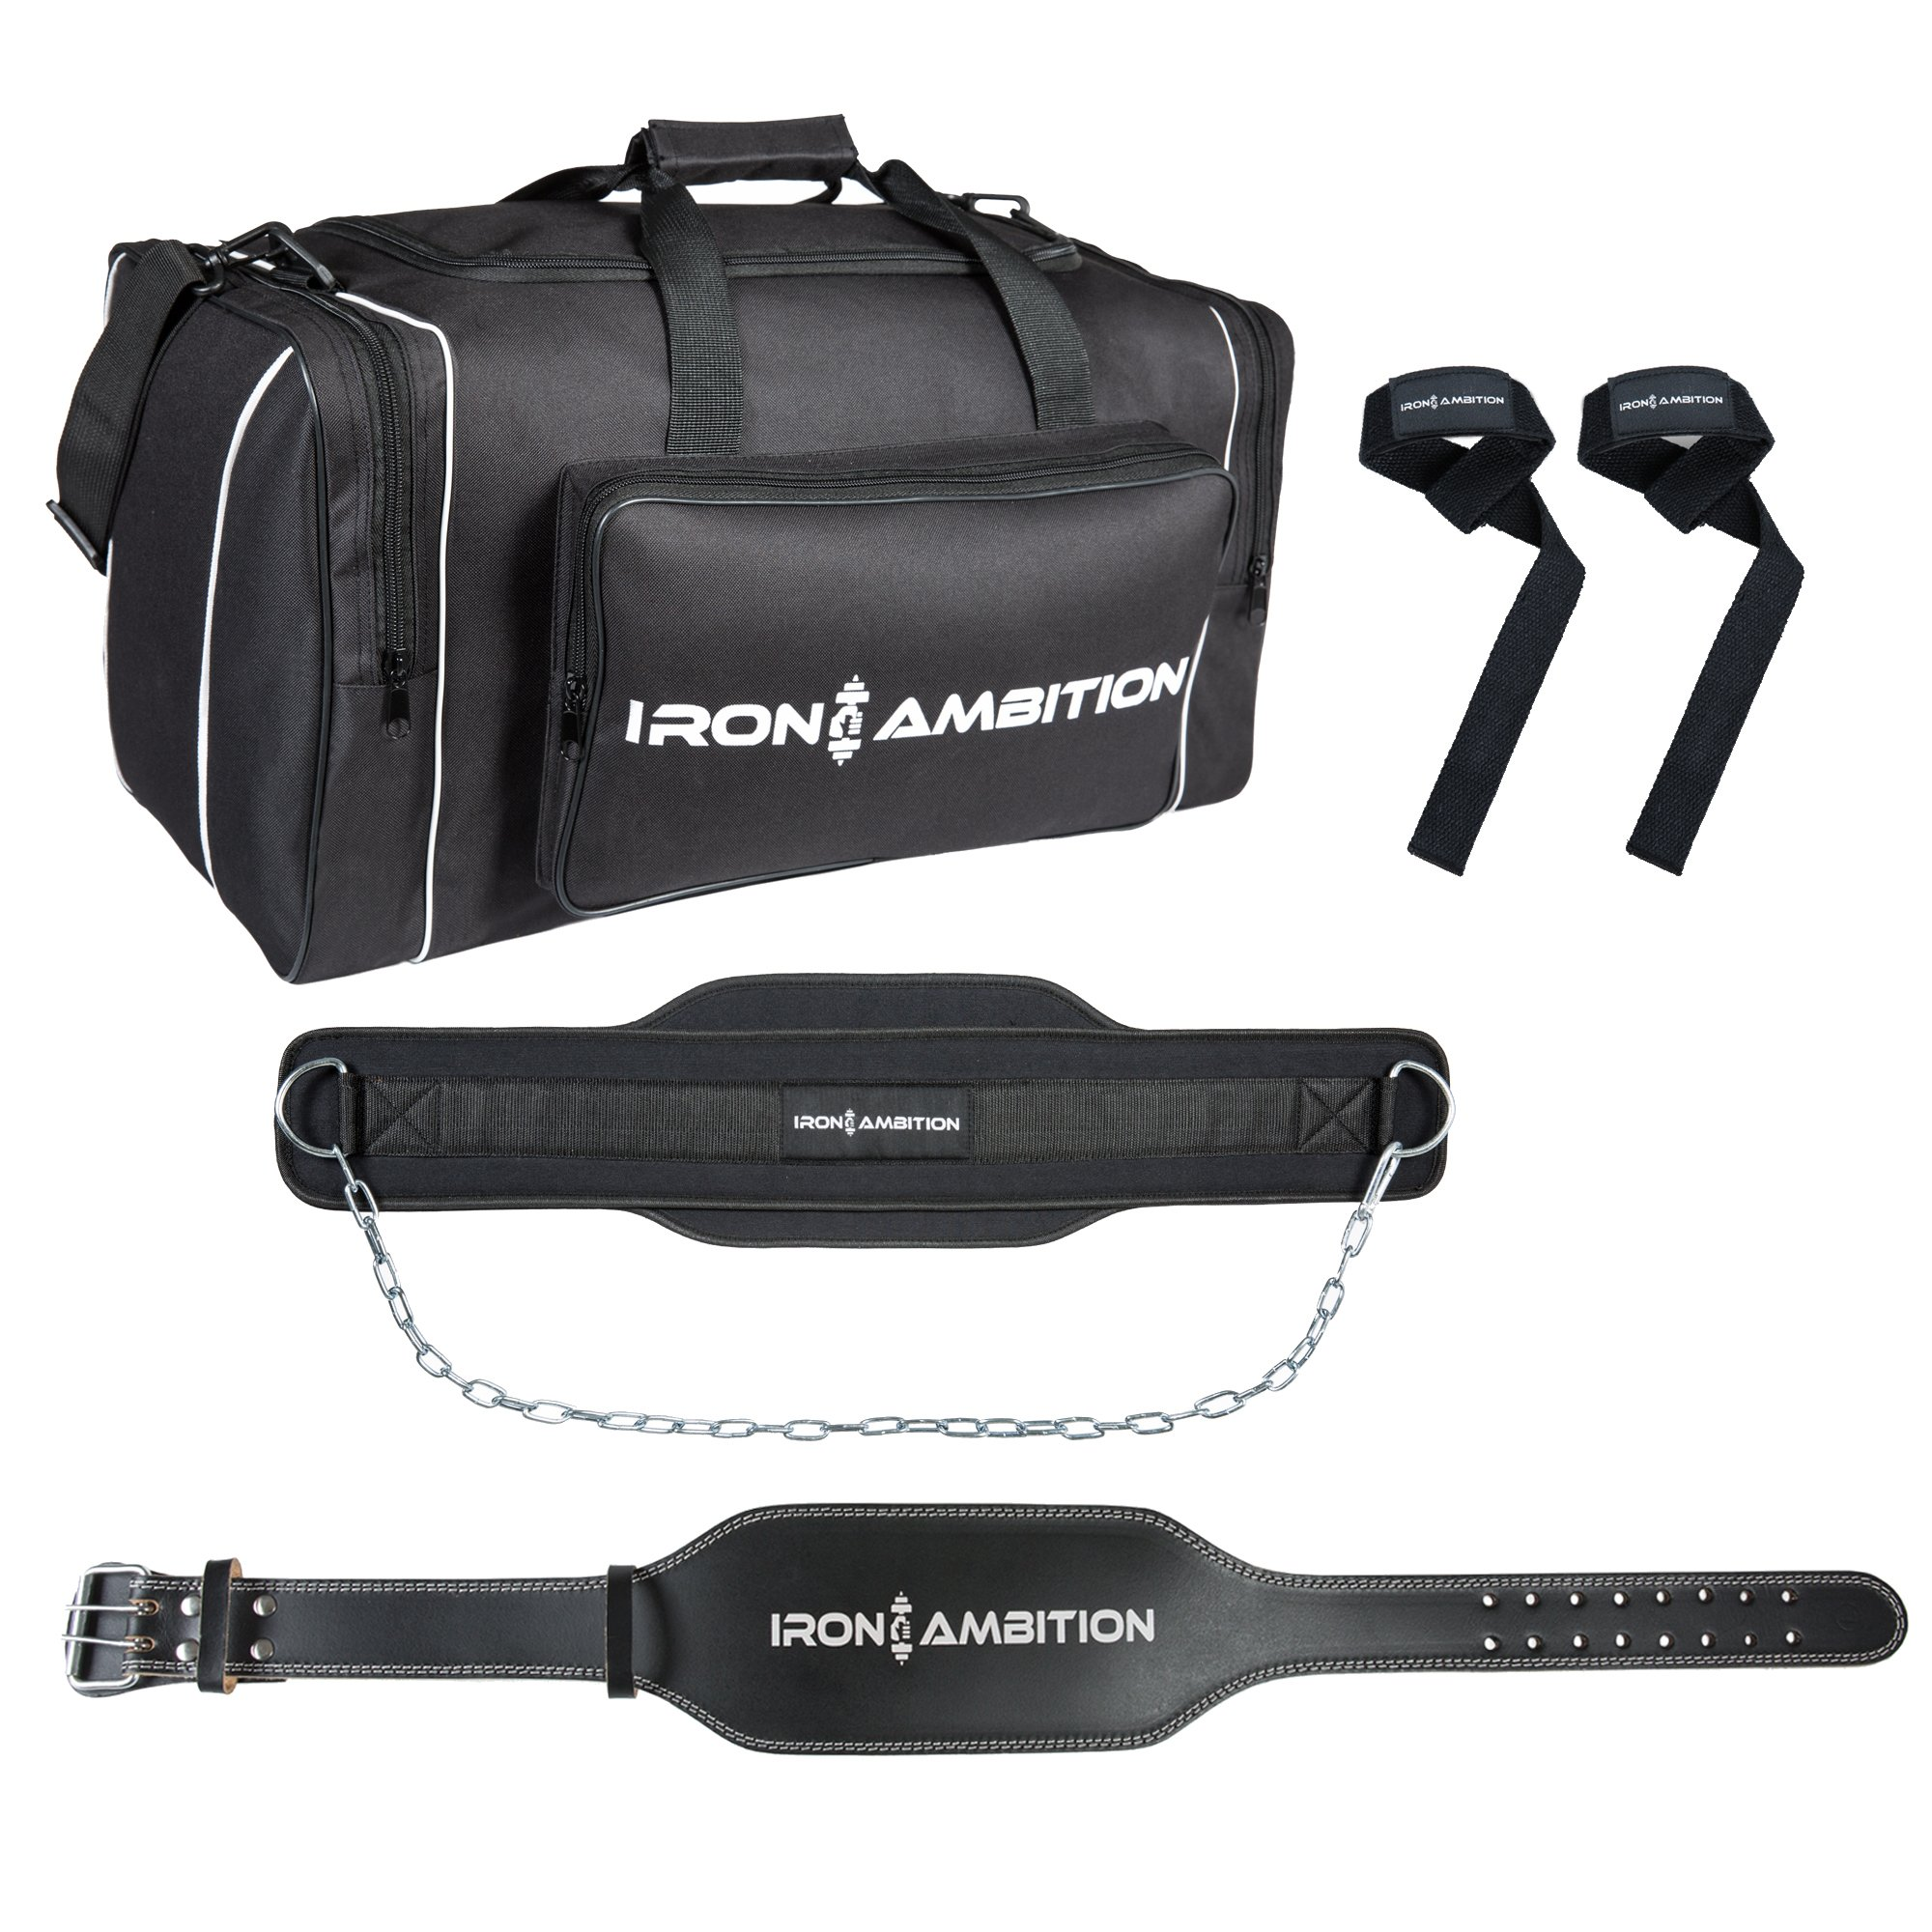 Ultimate Muscle Builder's Gym Bag Bundle By Iron Ambition [4 Items]: Sport Duffel Bag, Powerlifting Belt, Dip Belt &Wrist Straps | Perfect For Crossfit, Weightlifting, Home Workouts & Bodybuilding by Iron Ambition